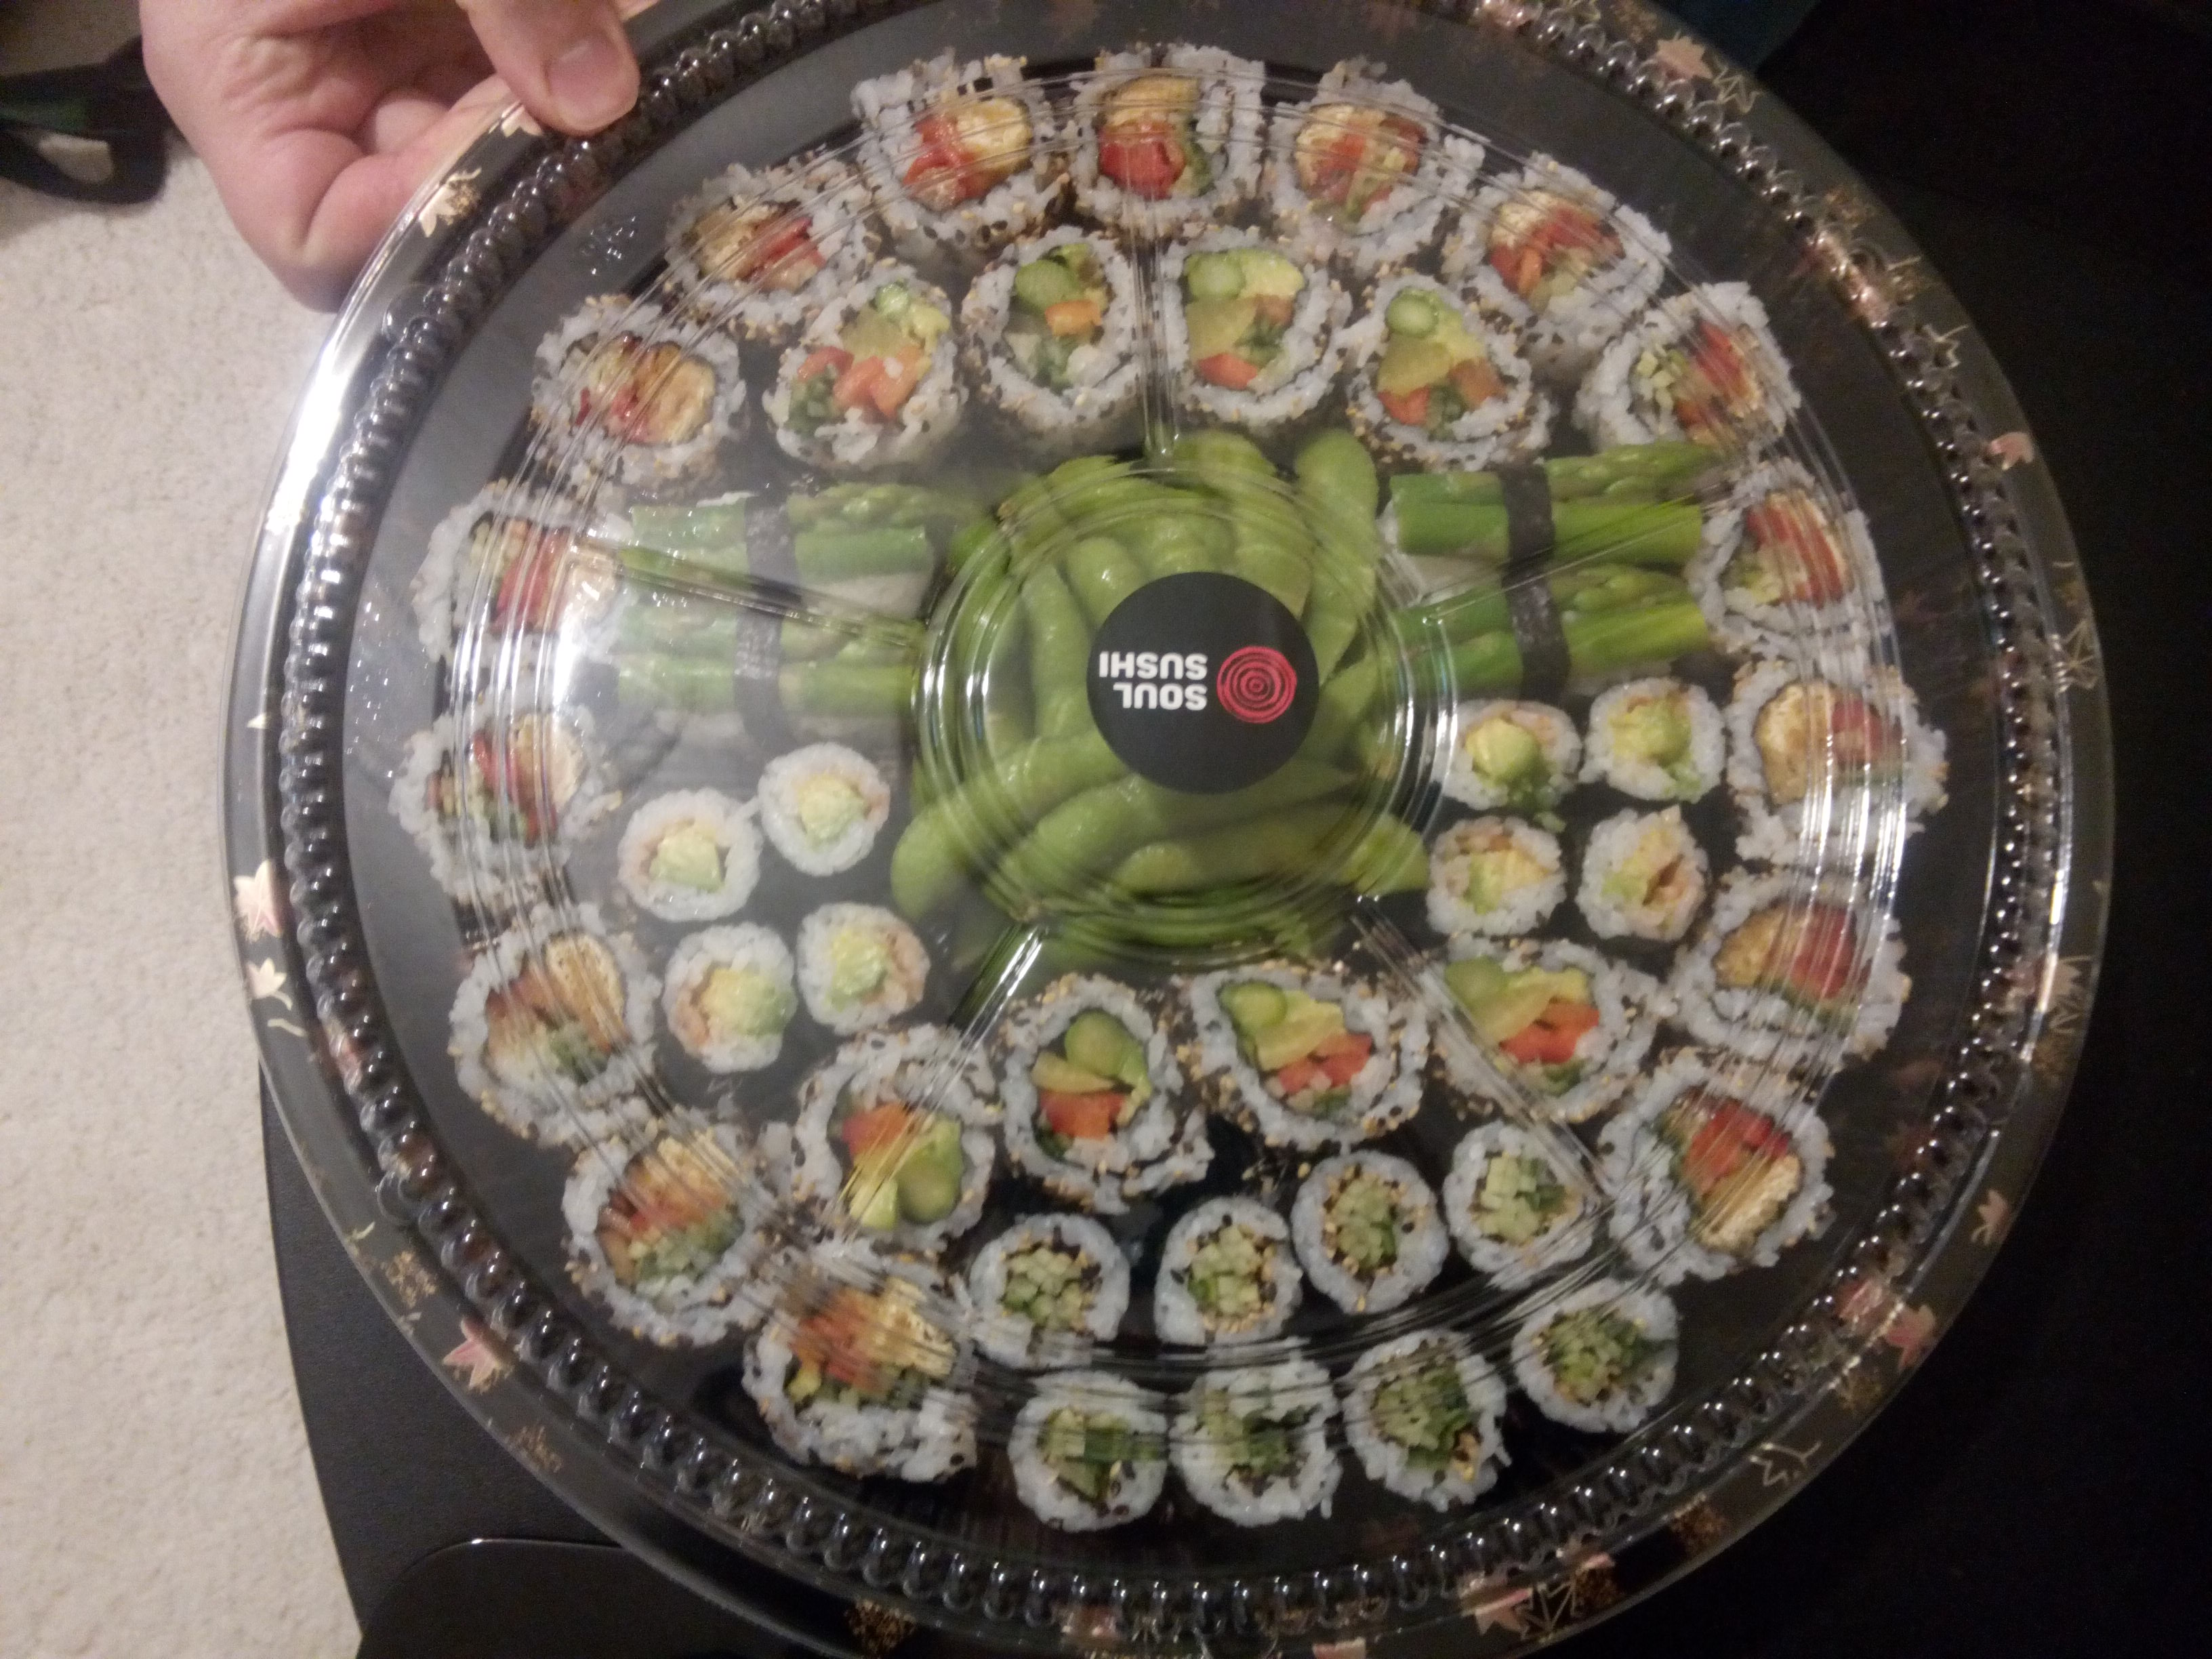 A round plastic tray filled with sushi pieces and edamame in the middle